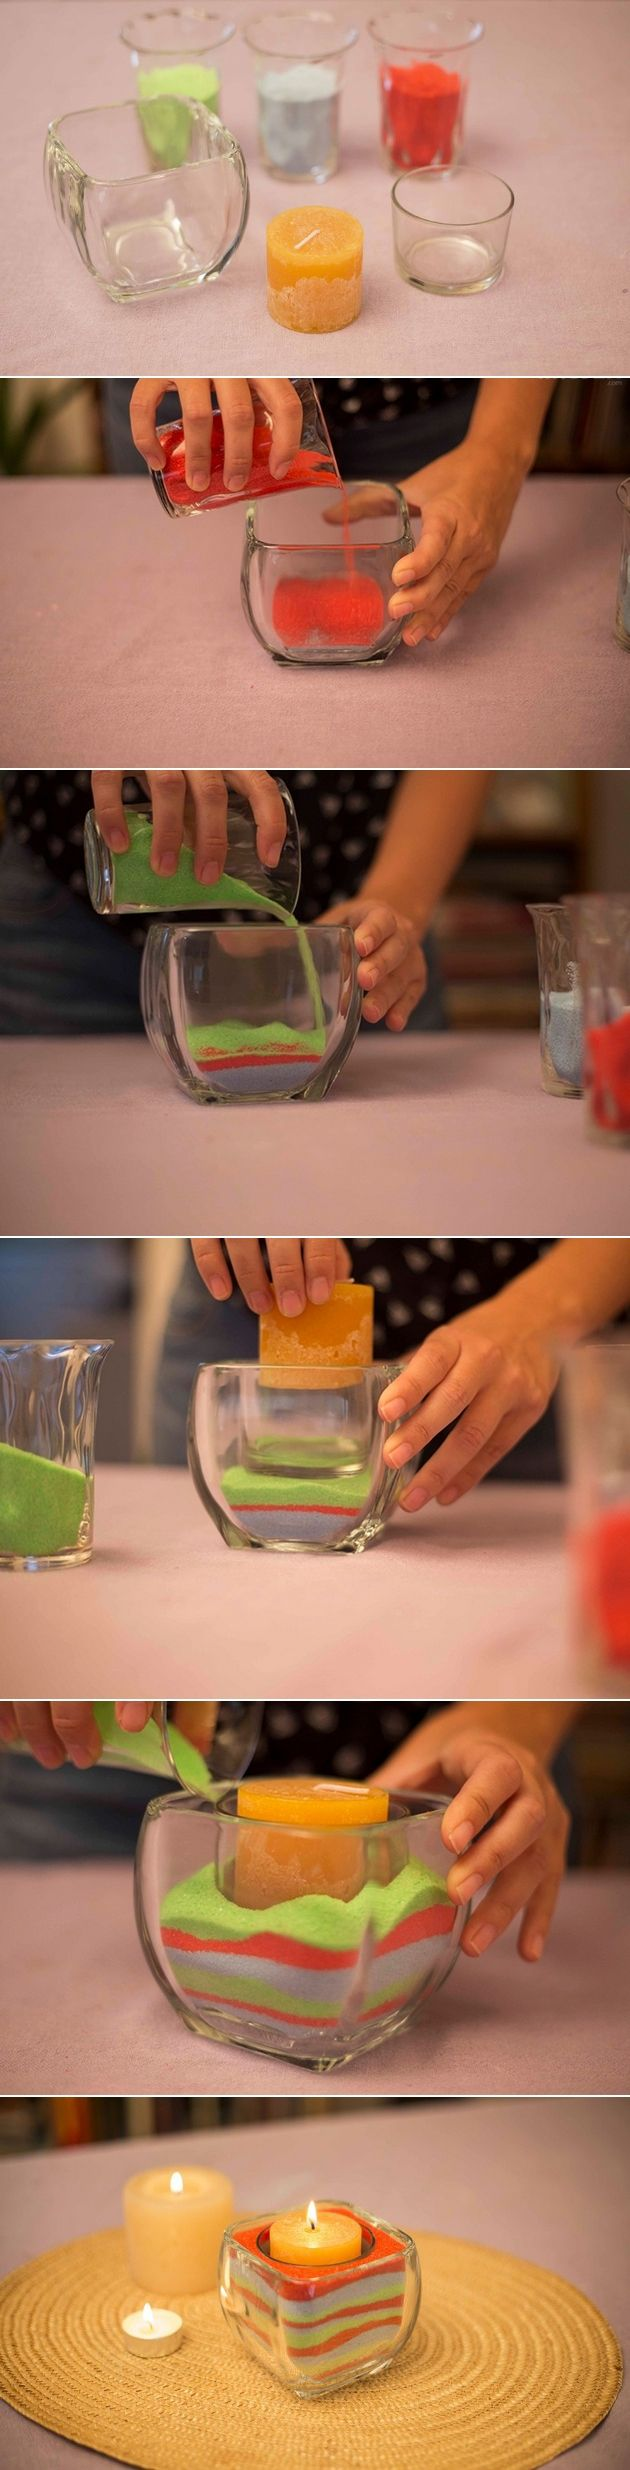 decorating glass candle holders with colored sand